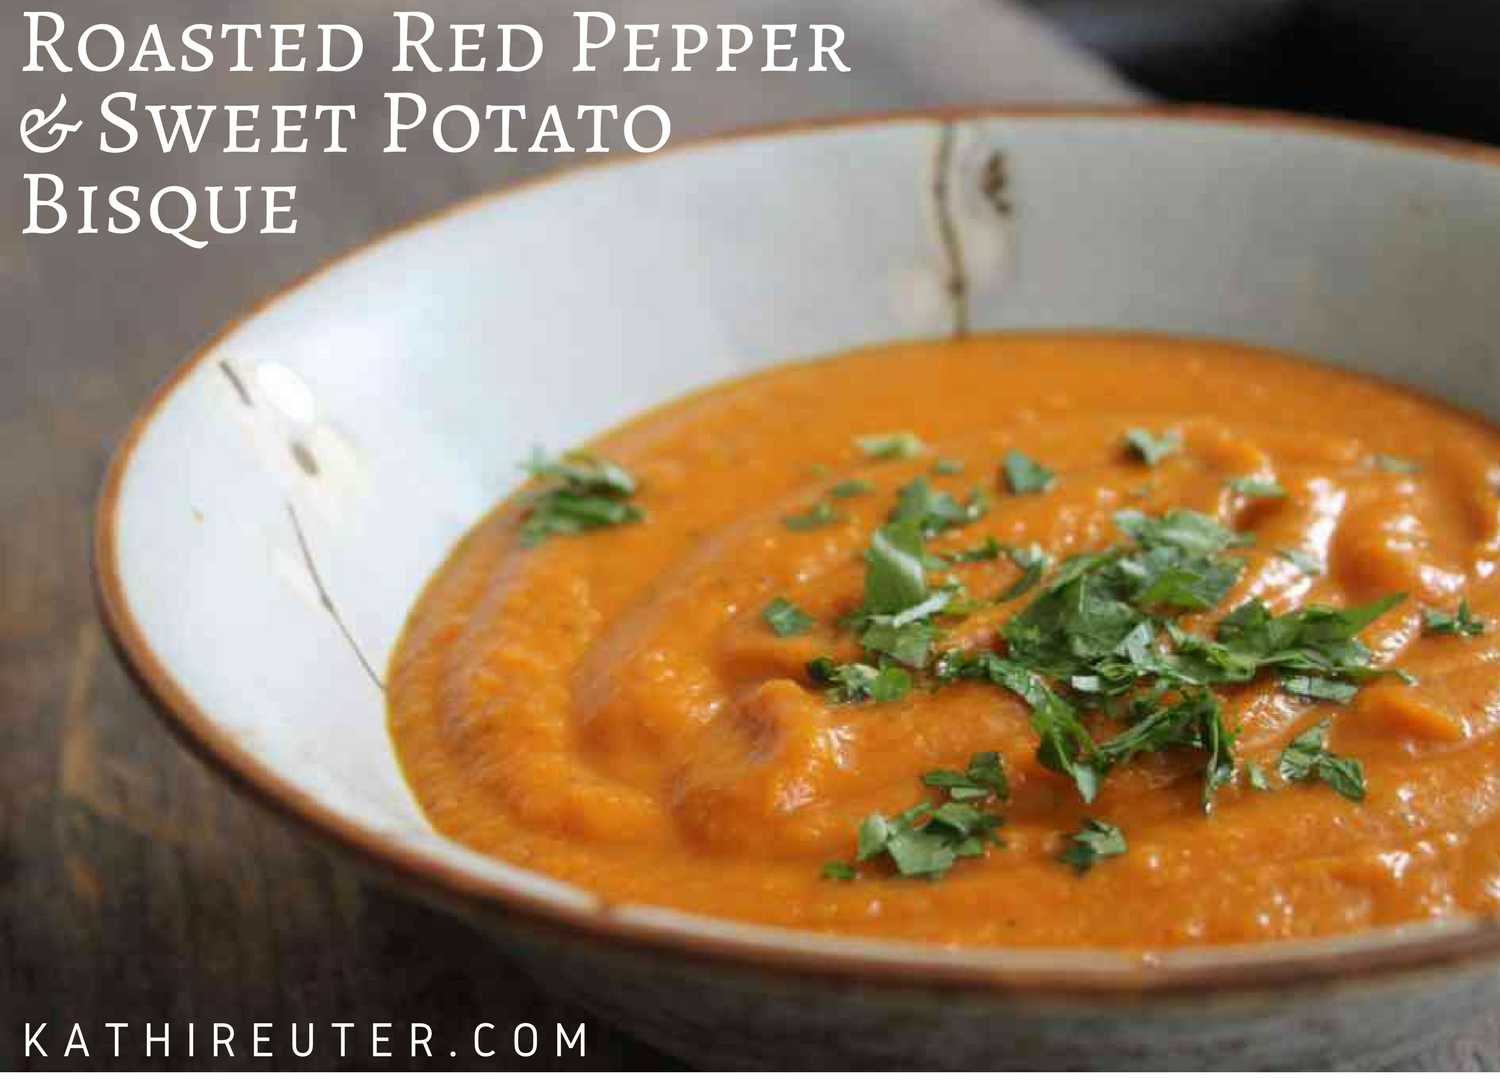 Roasted Red Pepper & Sweet Potato Bisque | Clean Eating Soup Recipe